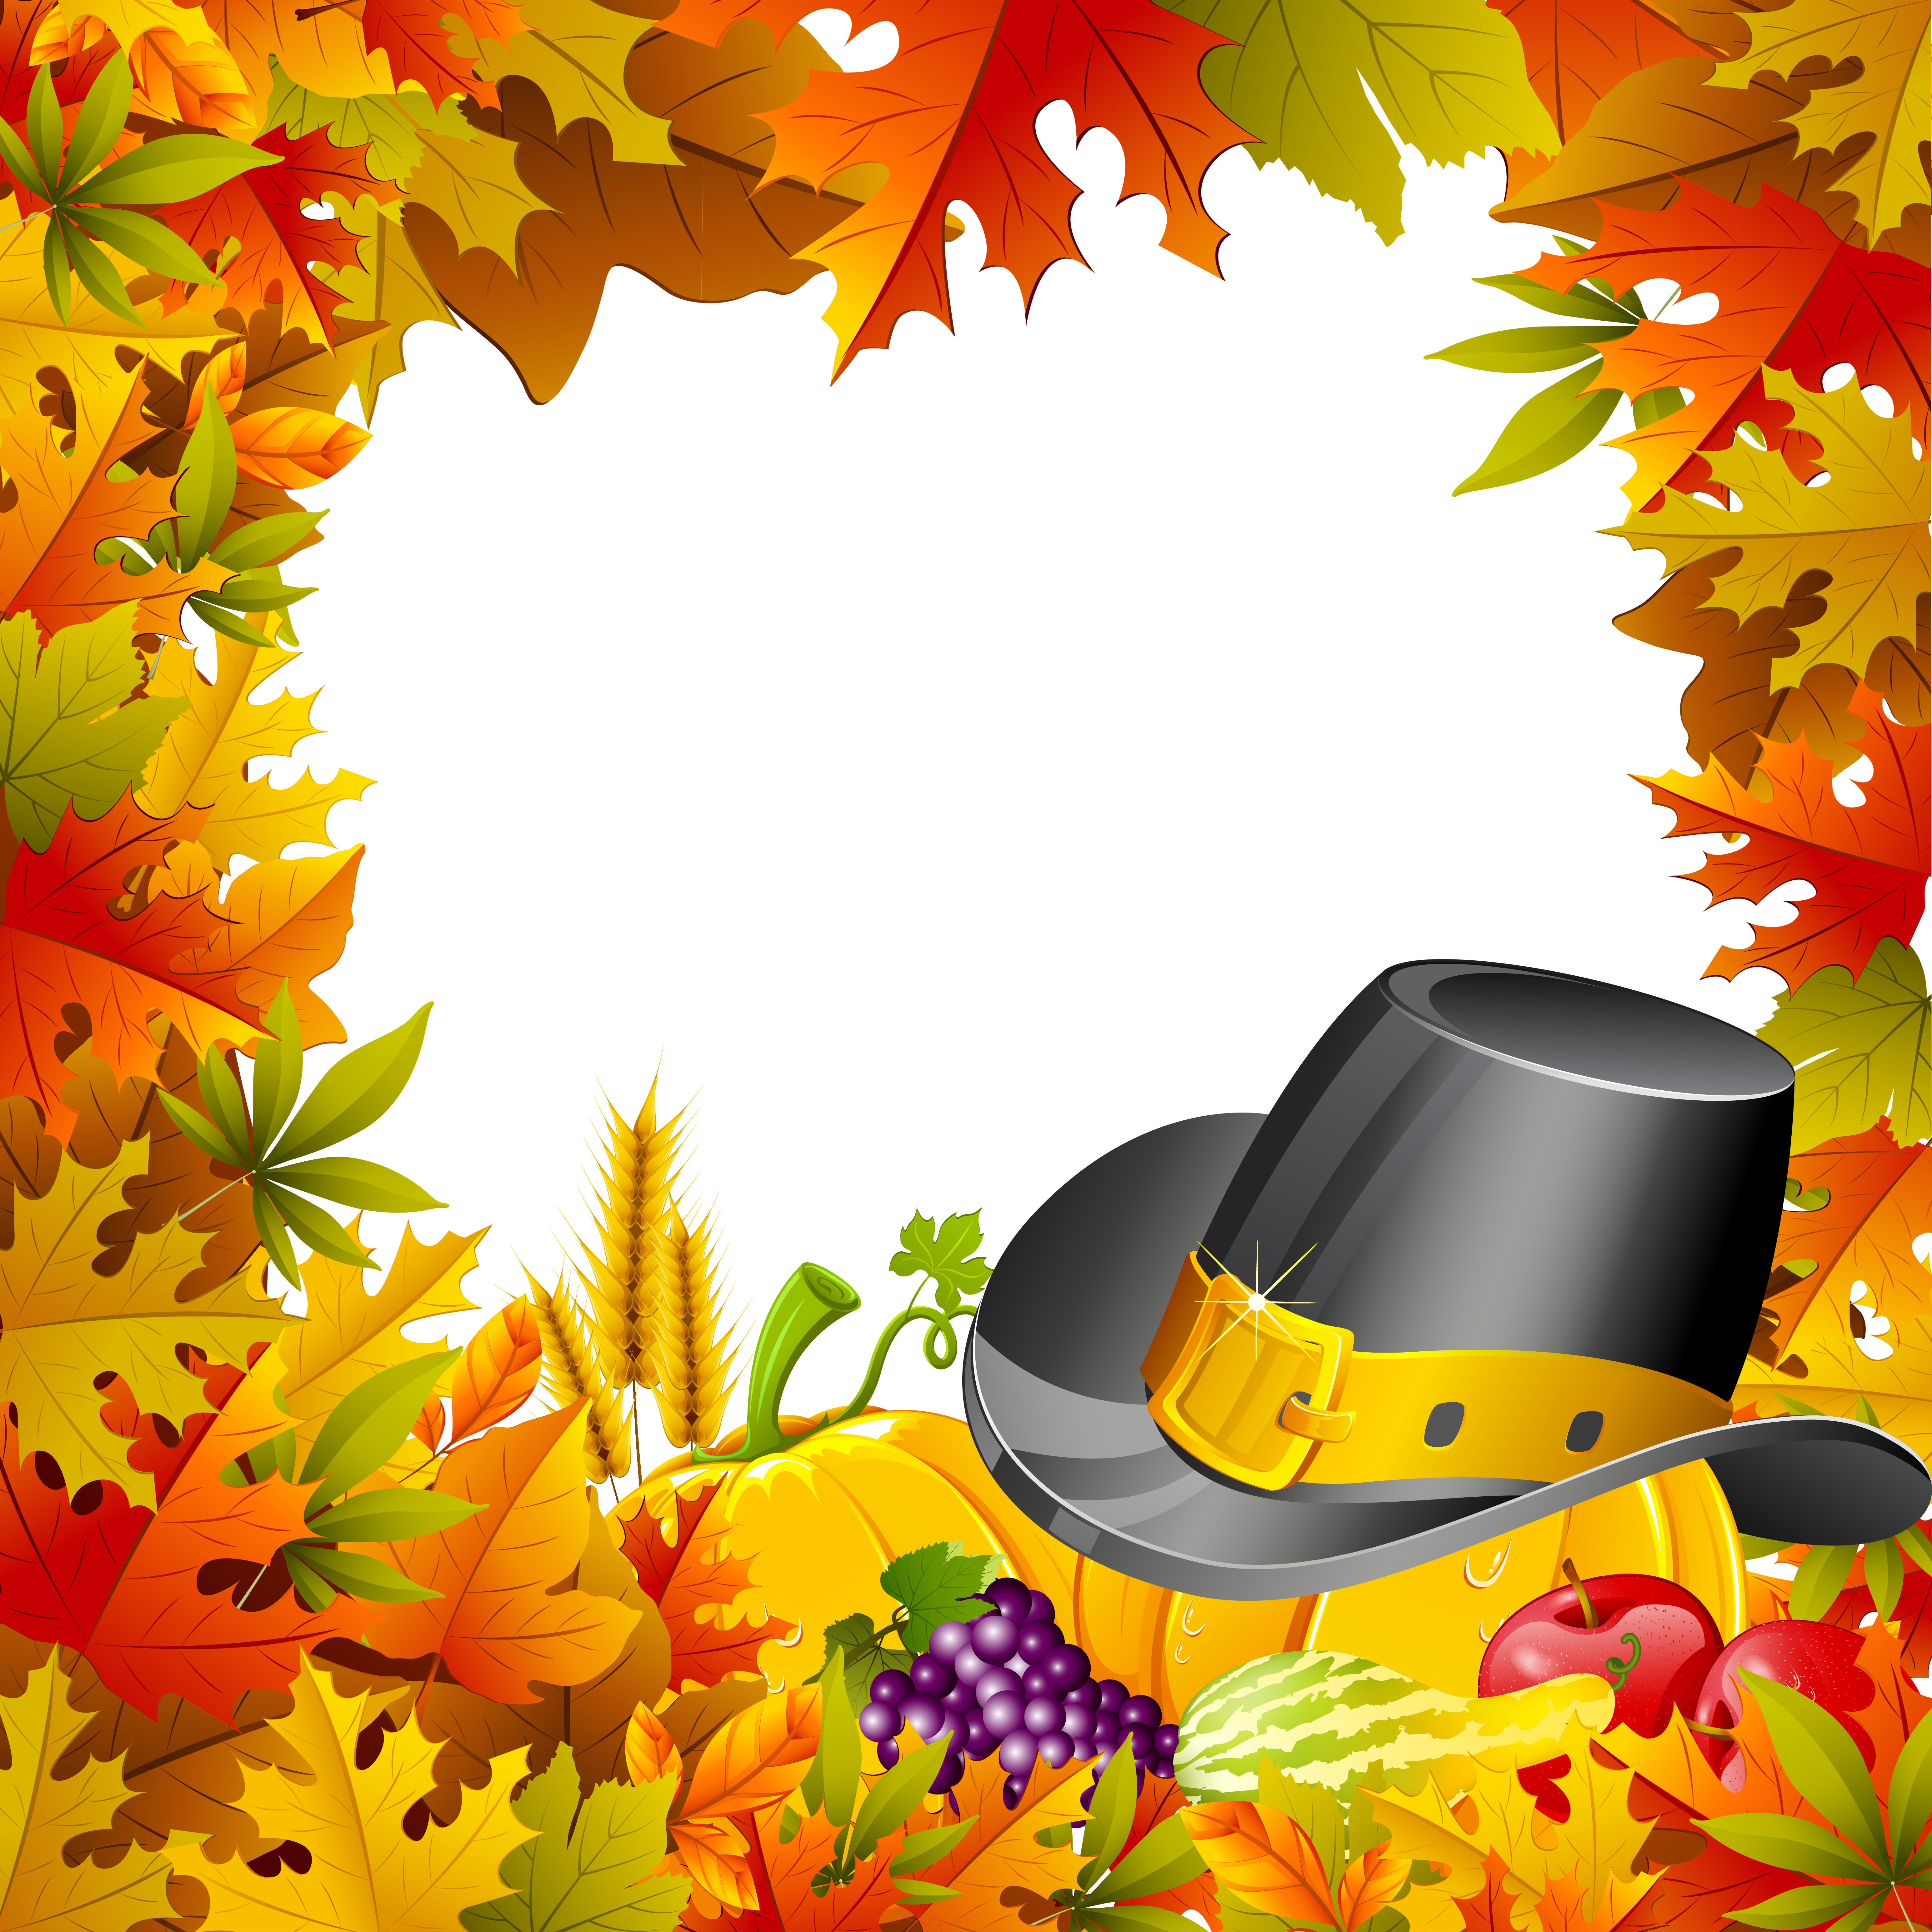 Free clipart border thanksgiving clipart download Thanksgiving clipart frame ~ Frames ~ Illustrations ~ HD images ... clipart download